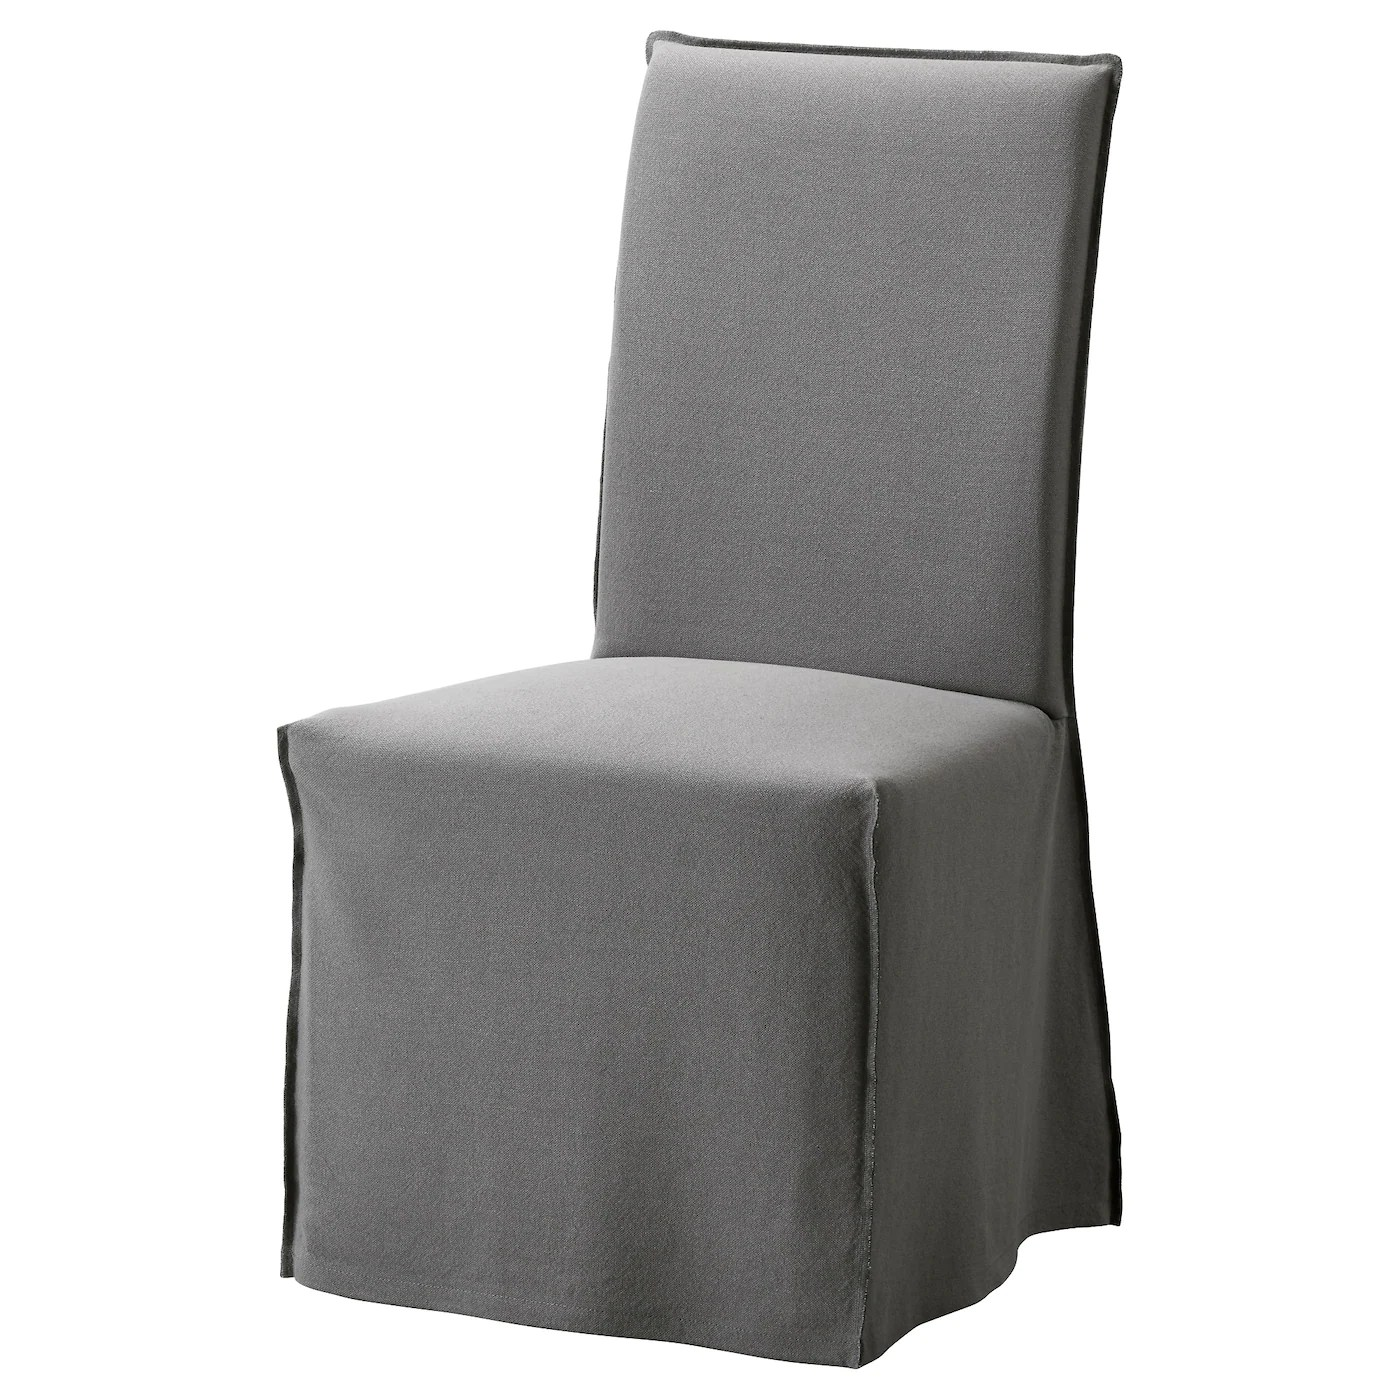 ikea velcro chair covers lounge chairs target henriksdal with long cover brown risane grey